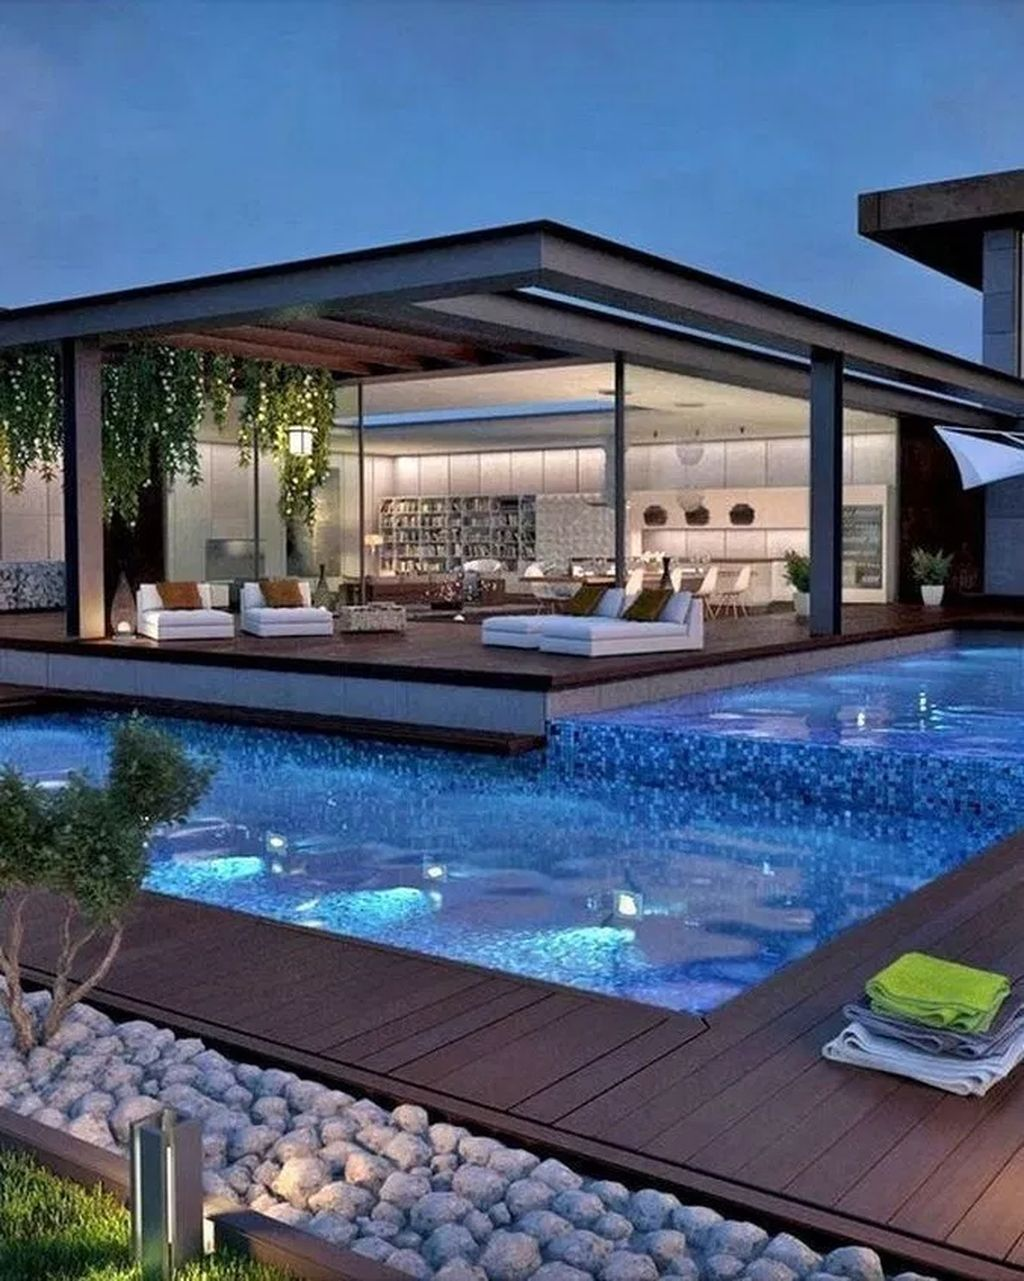 20 Unbelievably Beautiful Contemporary Home Exterior Designs: 20+ Fantastic Mediterranean Swimming Pool Designs Ideas Out Of Your Dreams